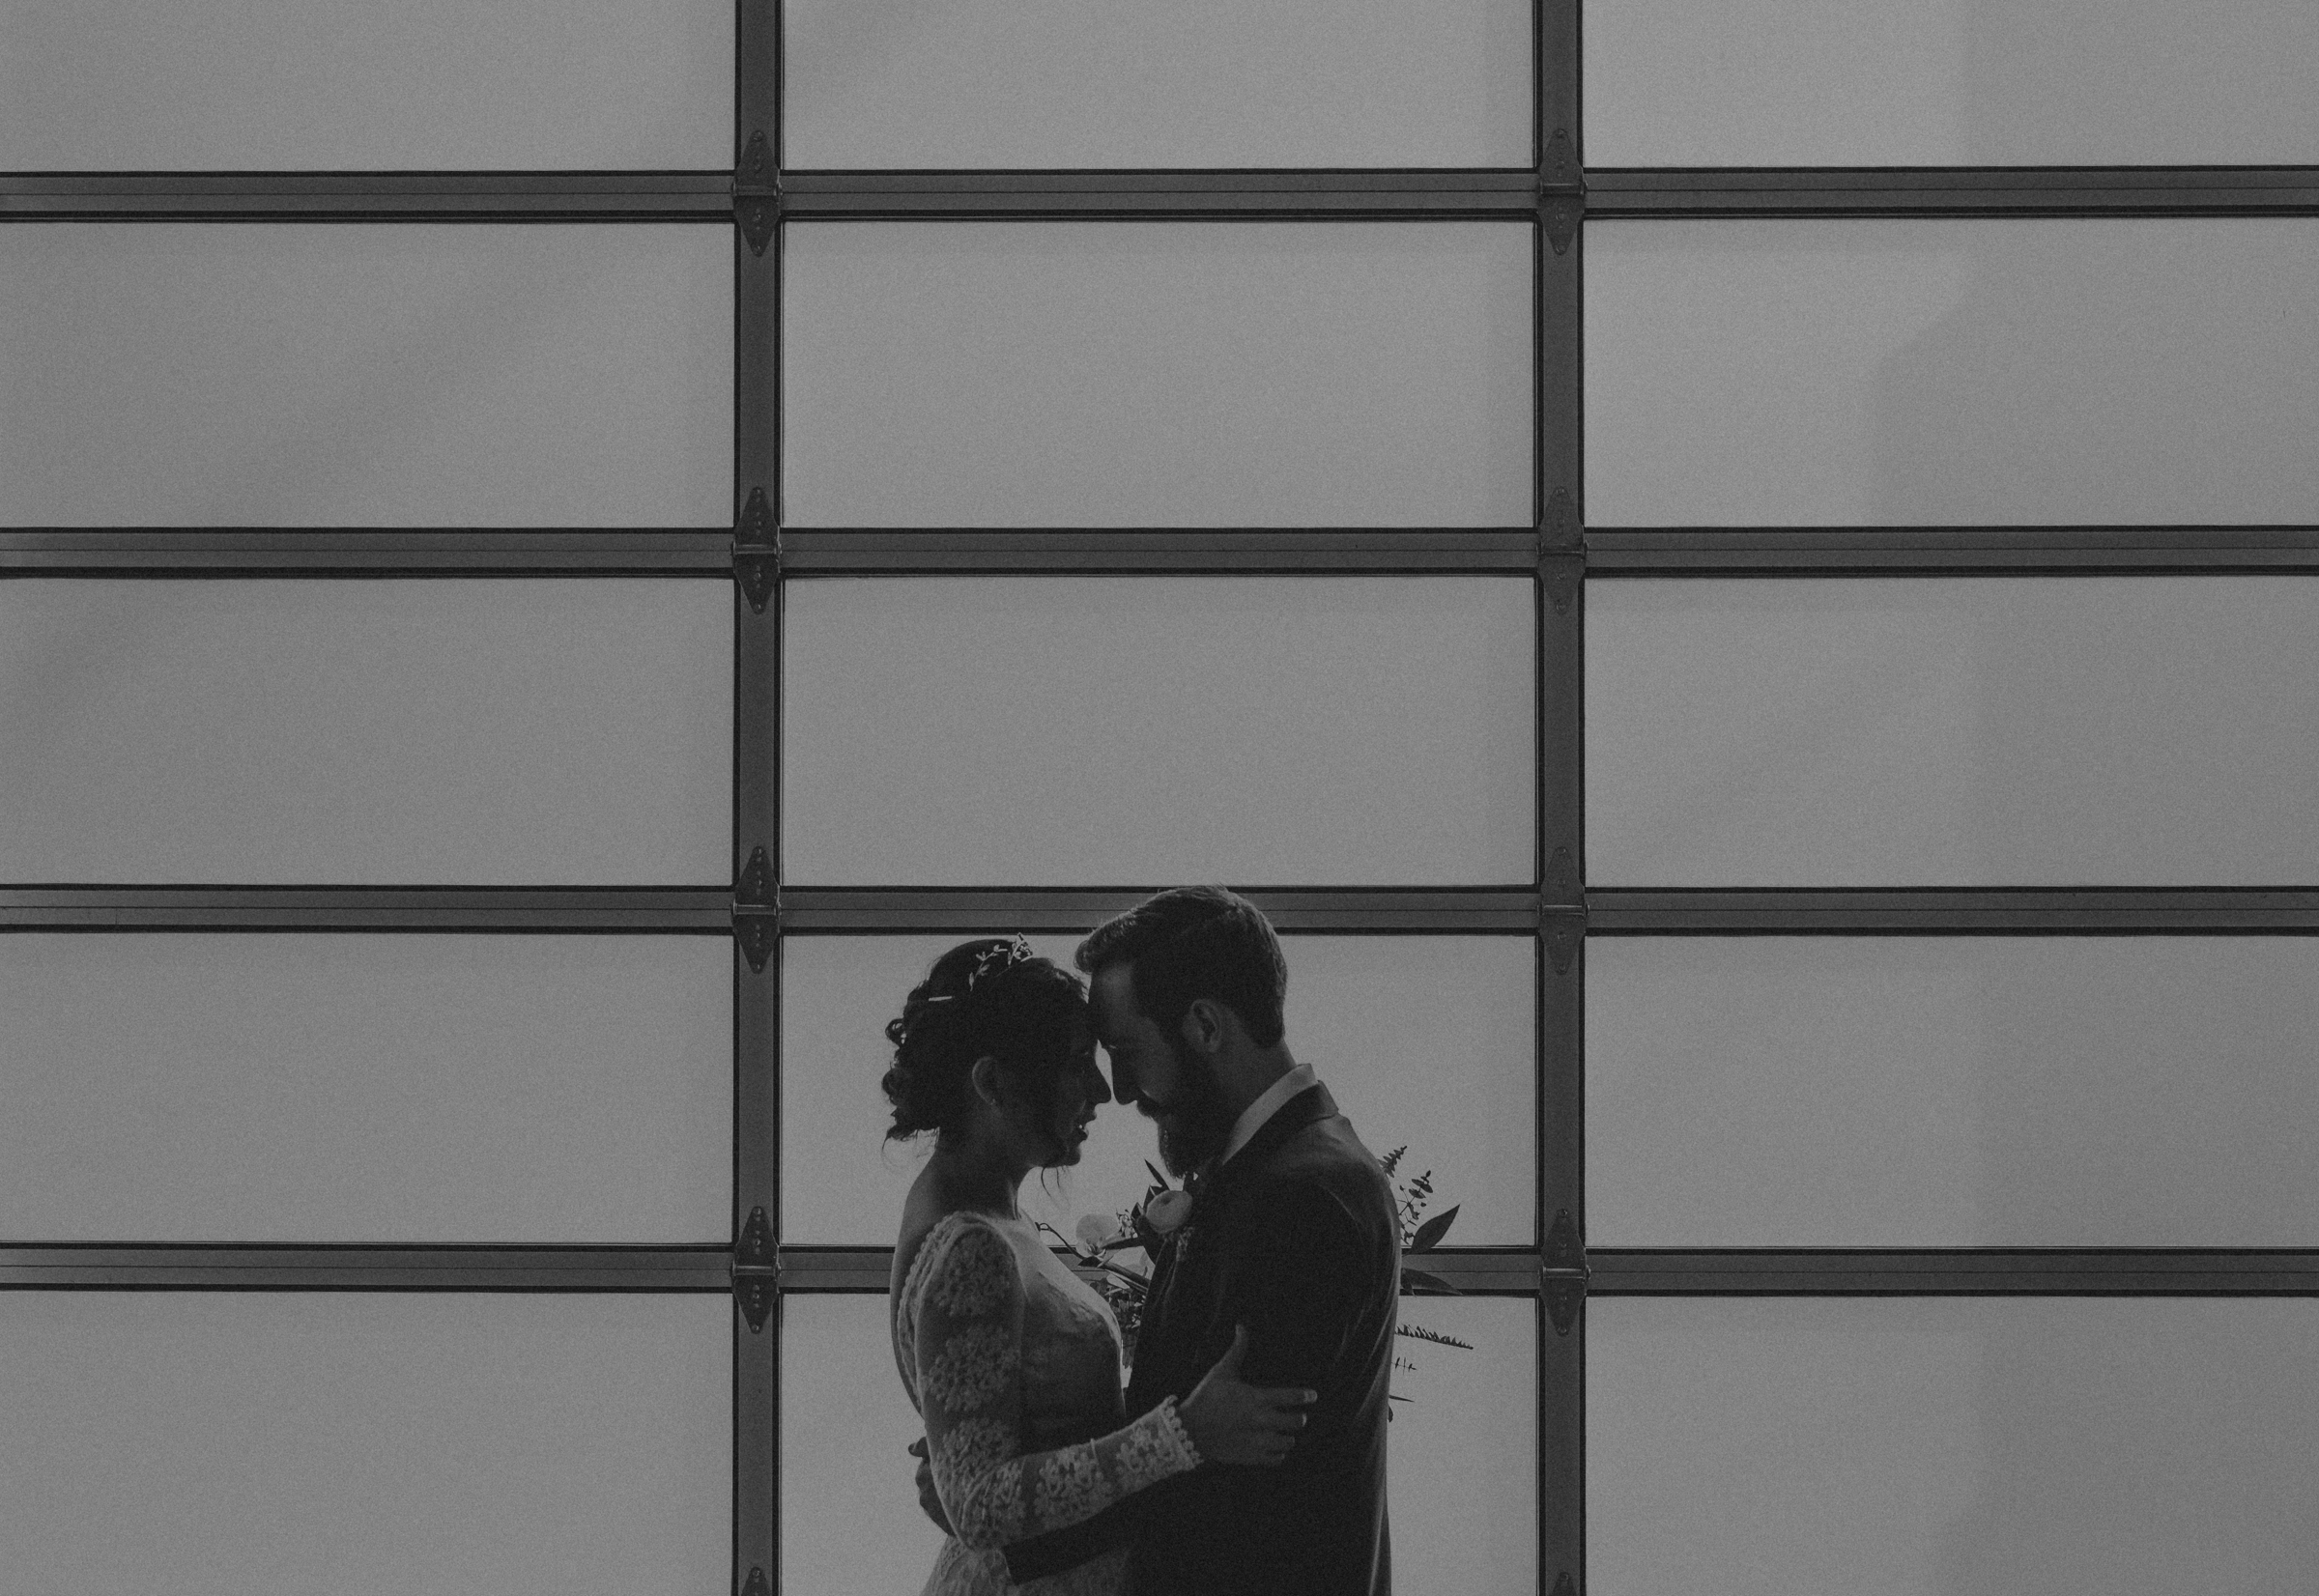 Isaiah + Taylor Photography - The Unique Space Wedding, Los Angeles Wedding Photography 071.jpg